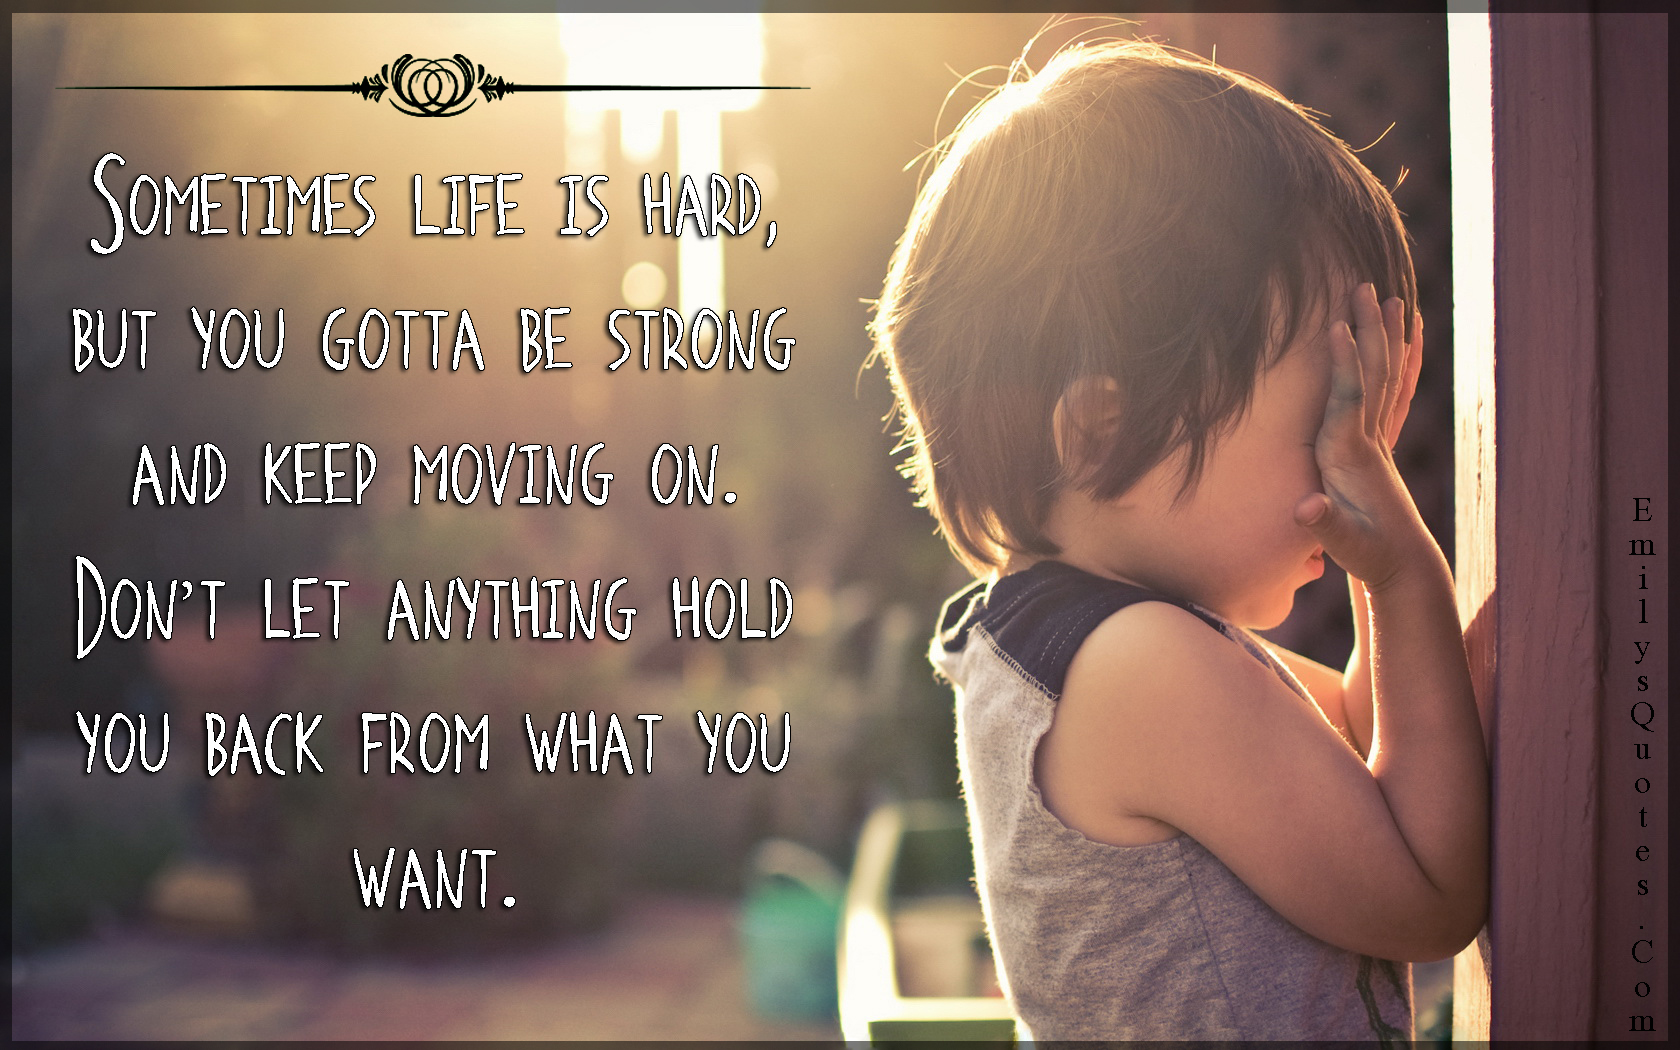 Quotes About Life Moving On Sometimes Life Is Hard But You Gotta Be Strong And Keep Moving On